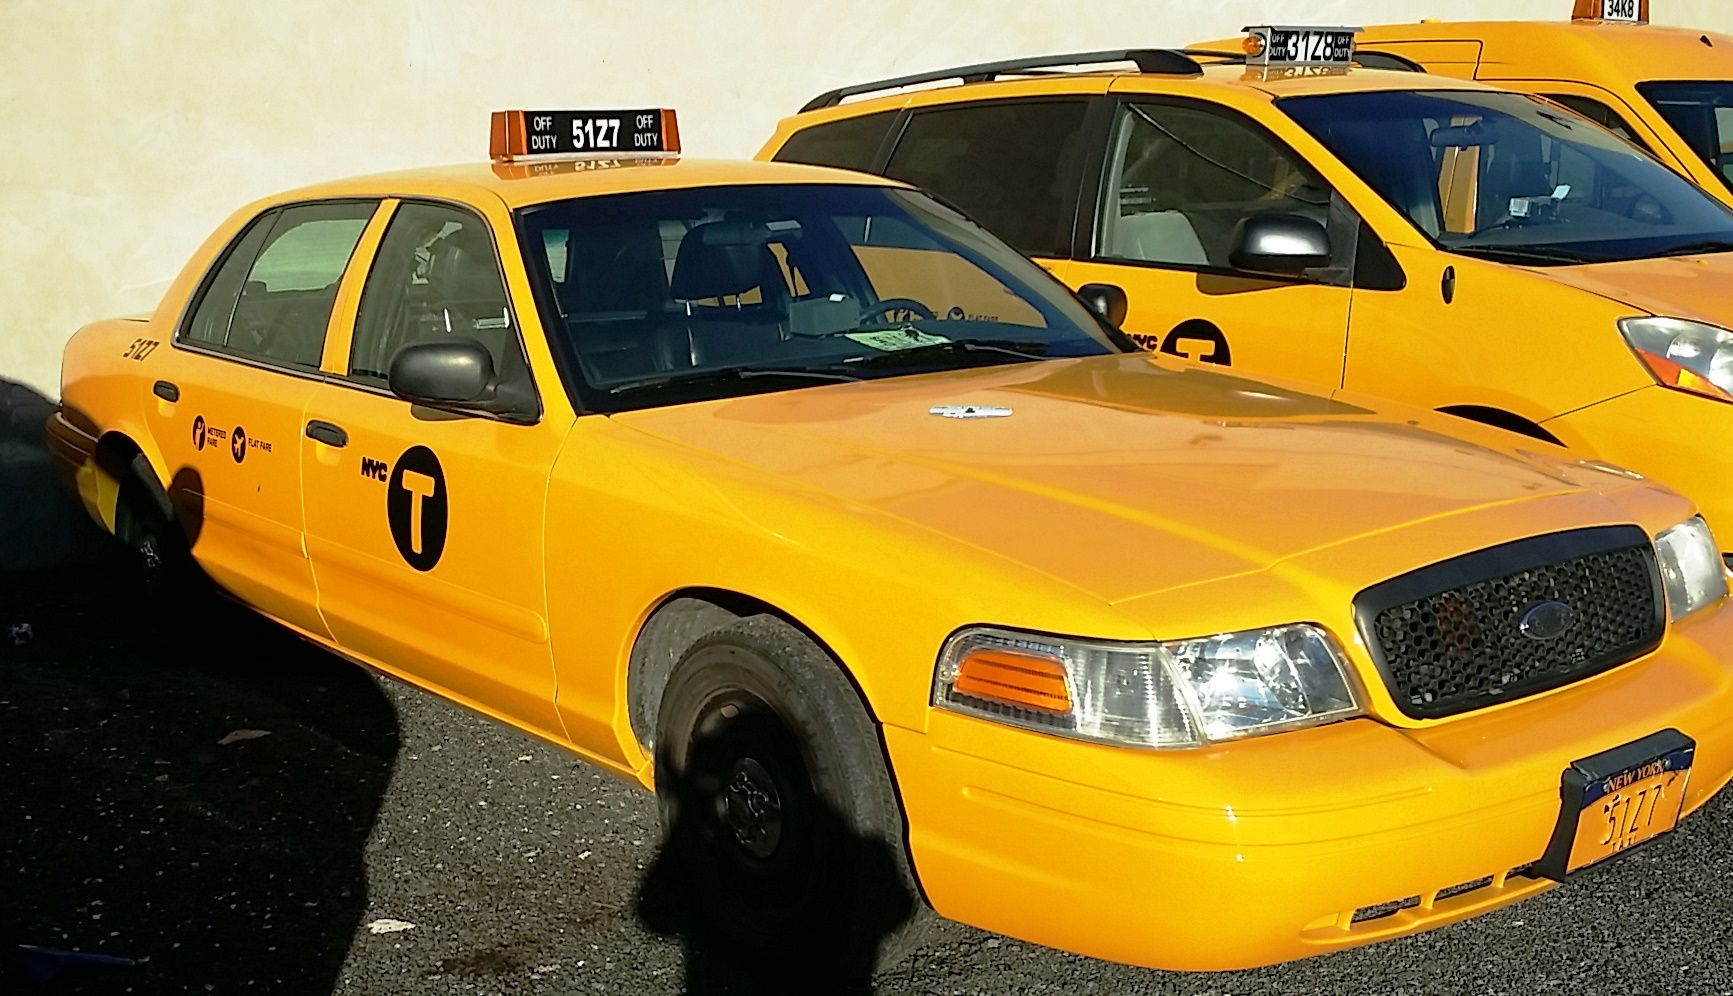 Picture Cars Advanced Search 1980 Ford Crown Victoria Taxi 2009